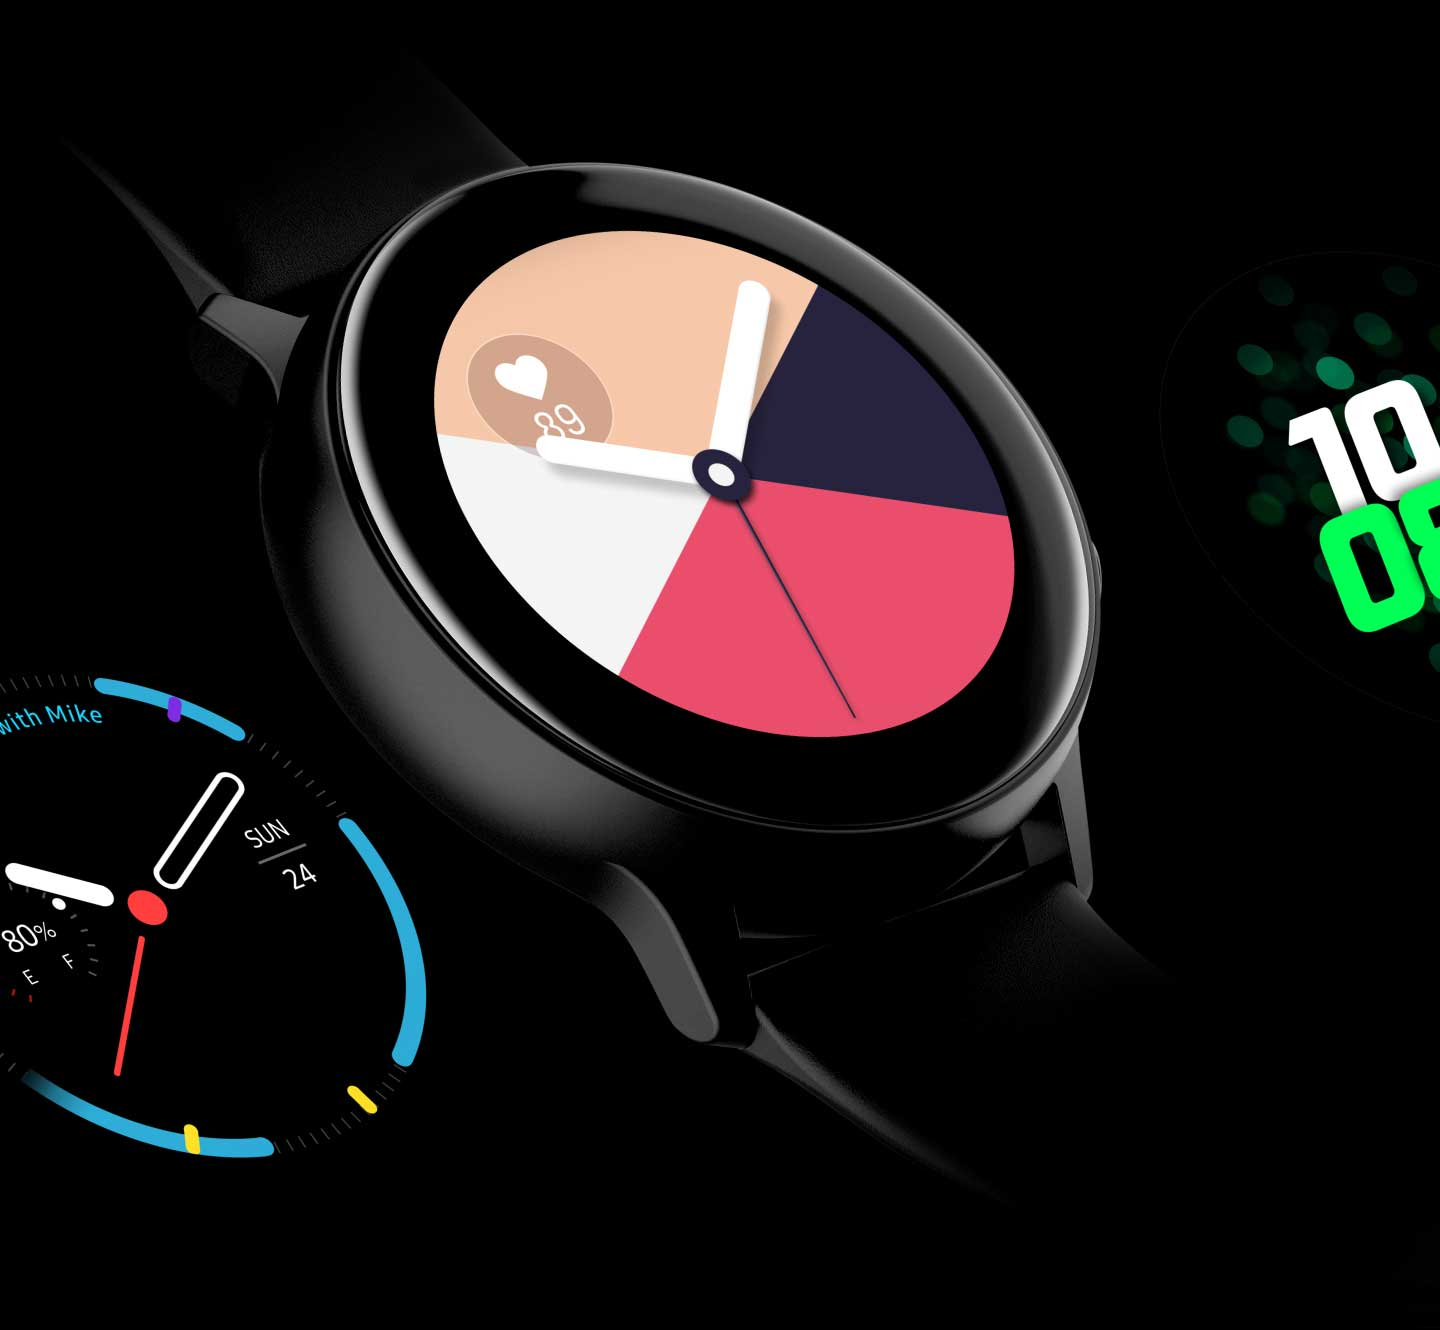 Four different designs of watch faces are exposed on the screen in The Galaxy Watch Active one by one. - face3